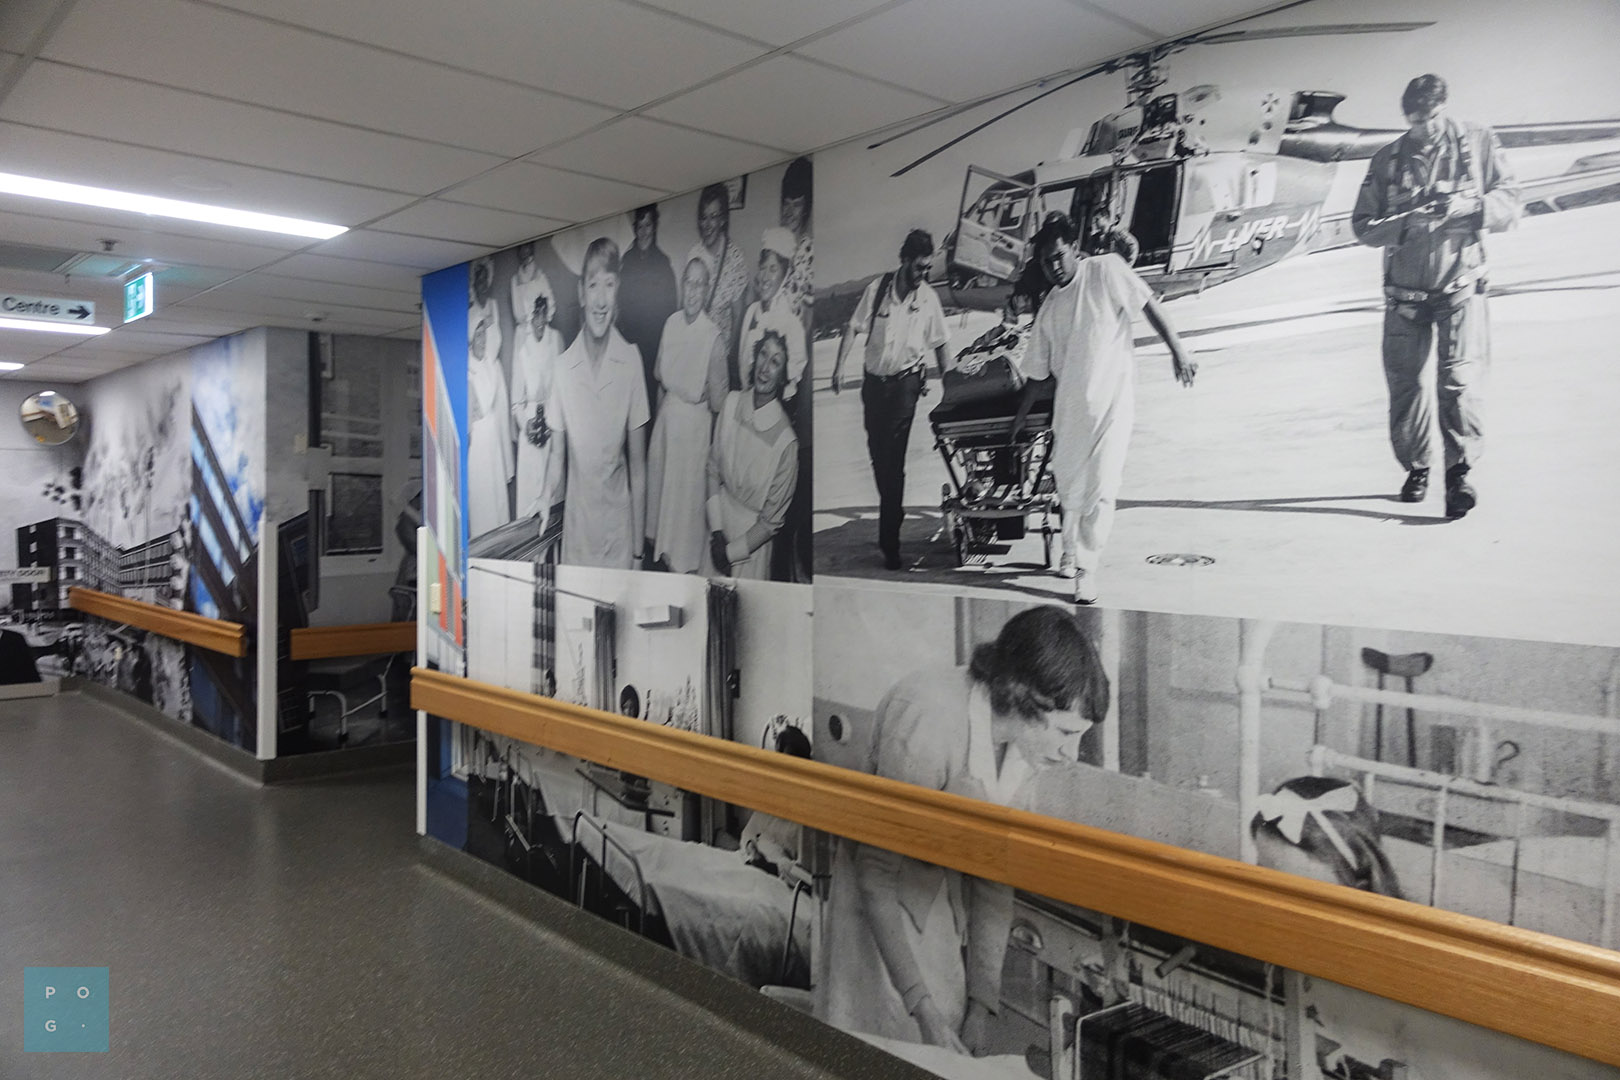 Hospital hallway with custom printed wall graphic panels featuring hospital imagery.